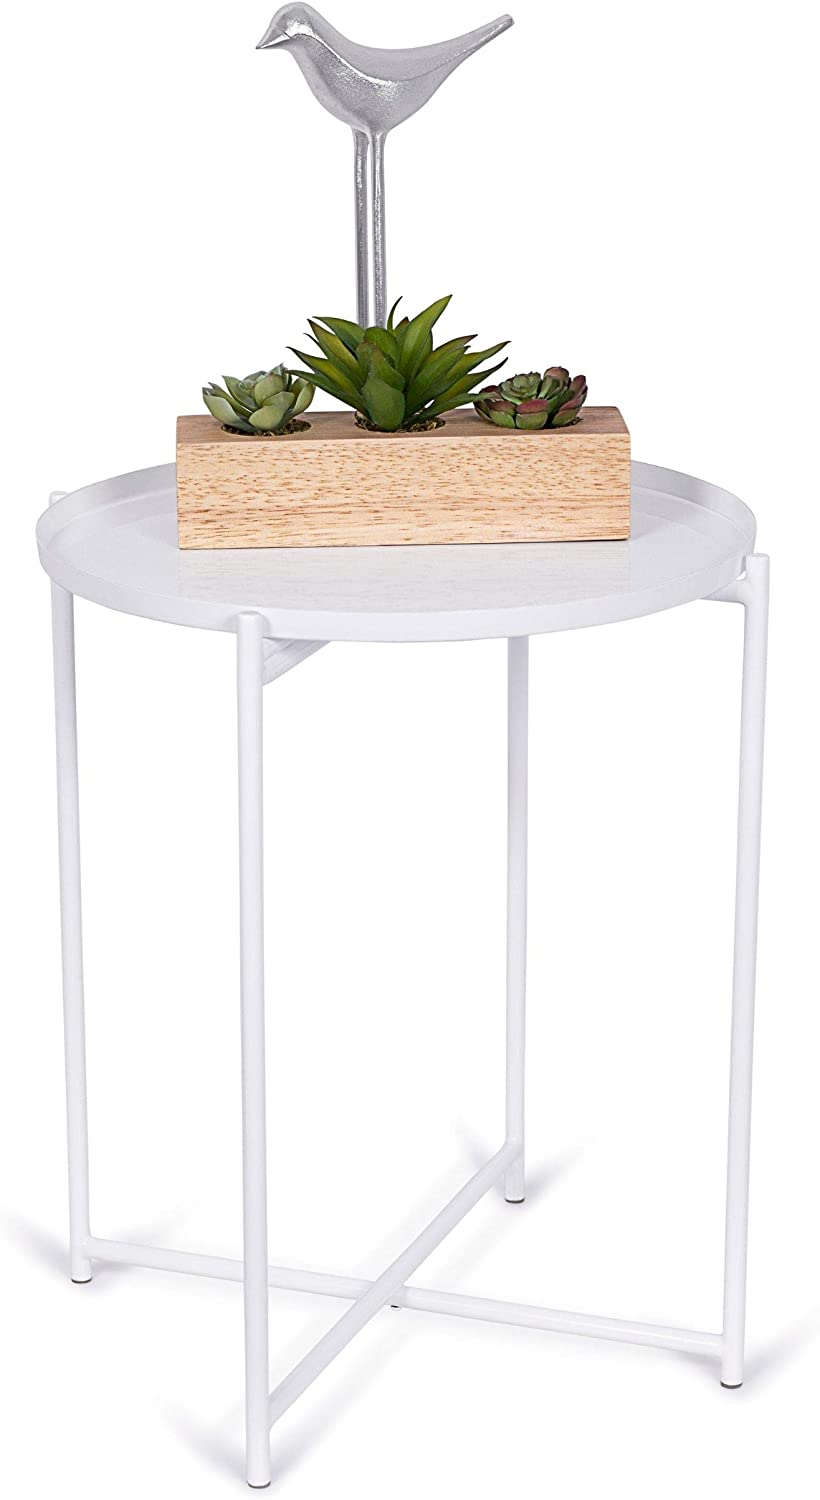 BIRDROCK HOME Ivory Folding Side Table with Removable Tray - Metal Foldable Nightstand - Living Room, Bedroom or Patio - Bar Coffee Drinks Food Serving Tray - Decorative Small Modern End Accent